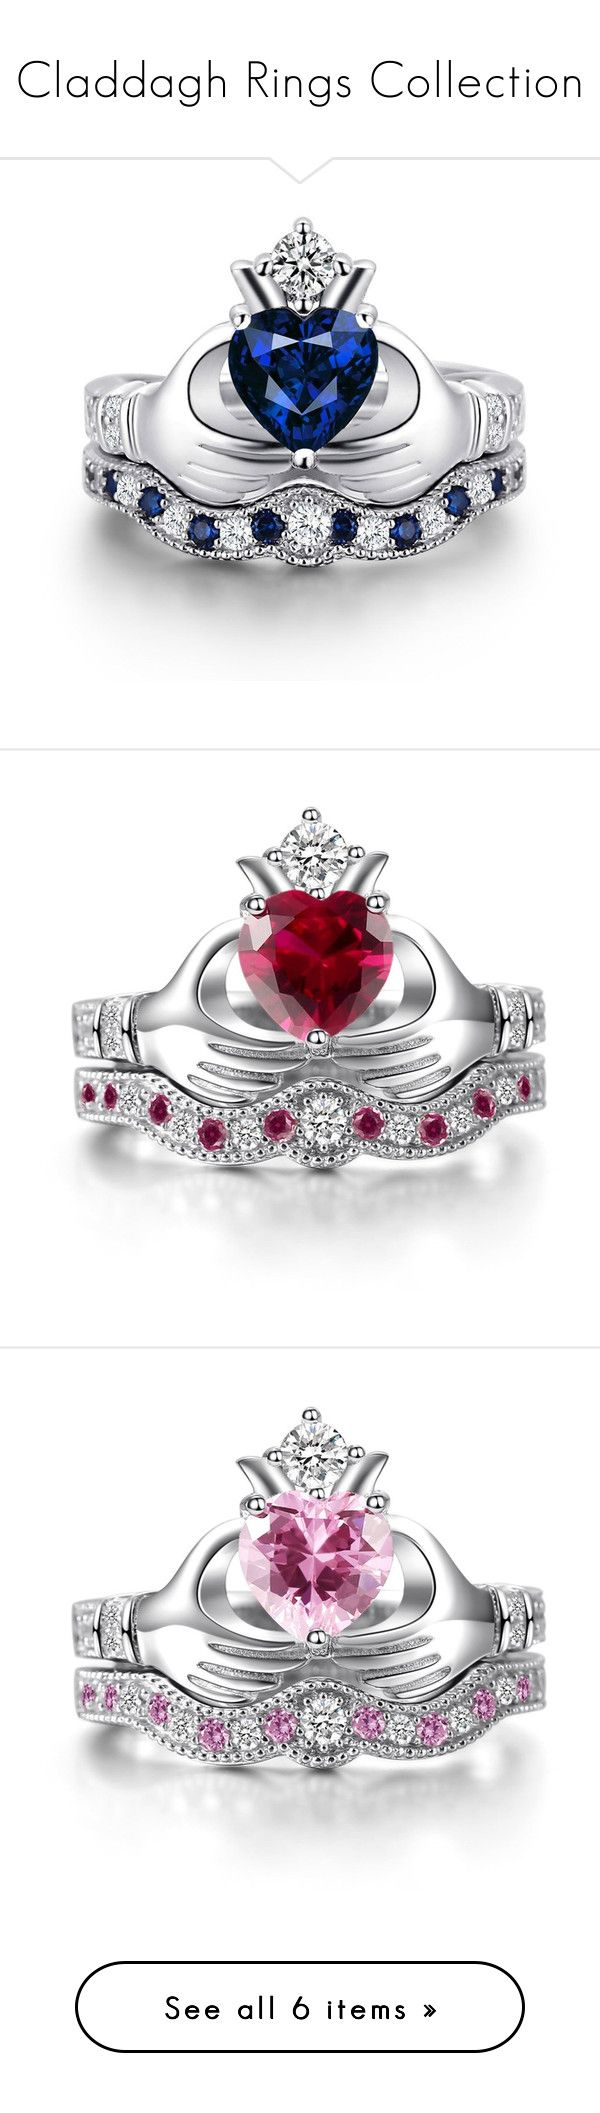 """""""Claddagh Rings Collection"""" by caperci on Polyvore featuring jewelry, rings, heart shaped rings, emerald ring, sterling silver heart ring, wedding rings and engagement rings"""